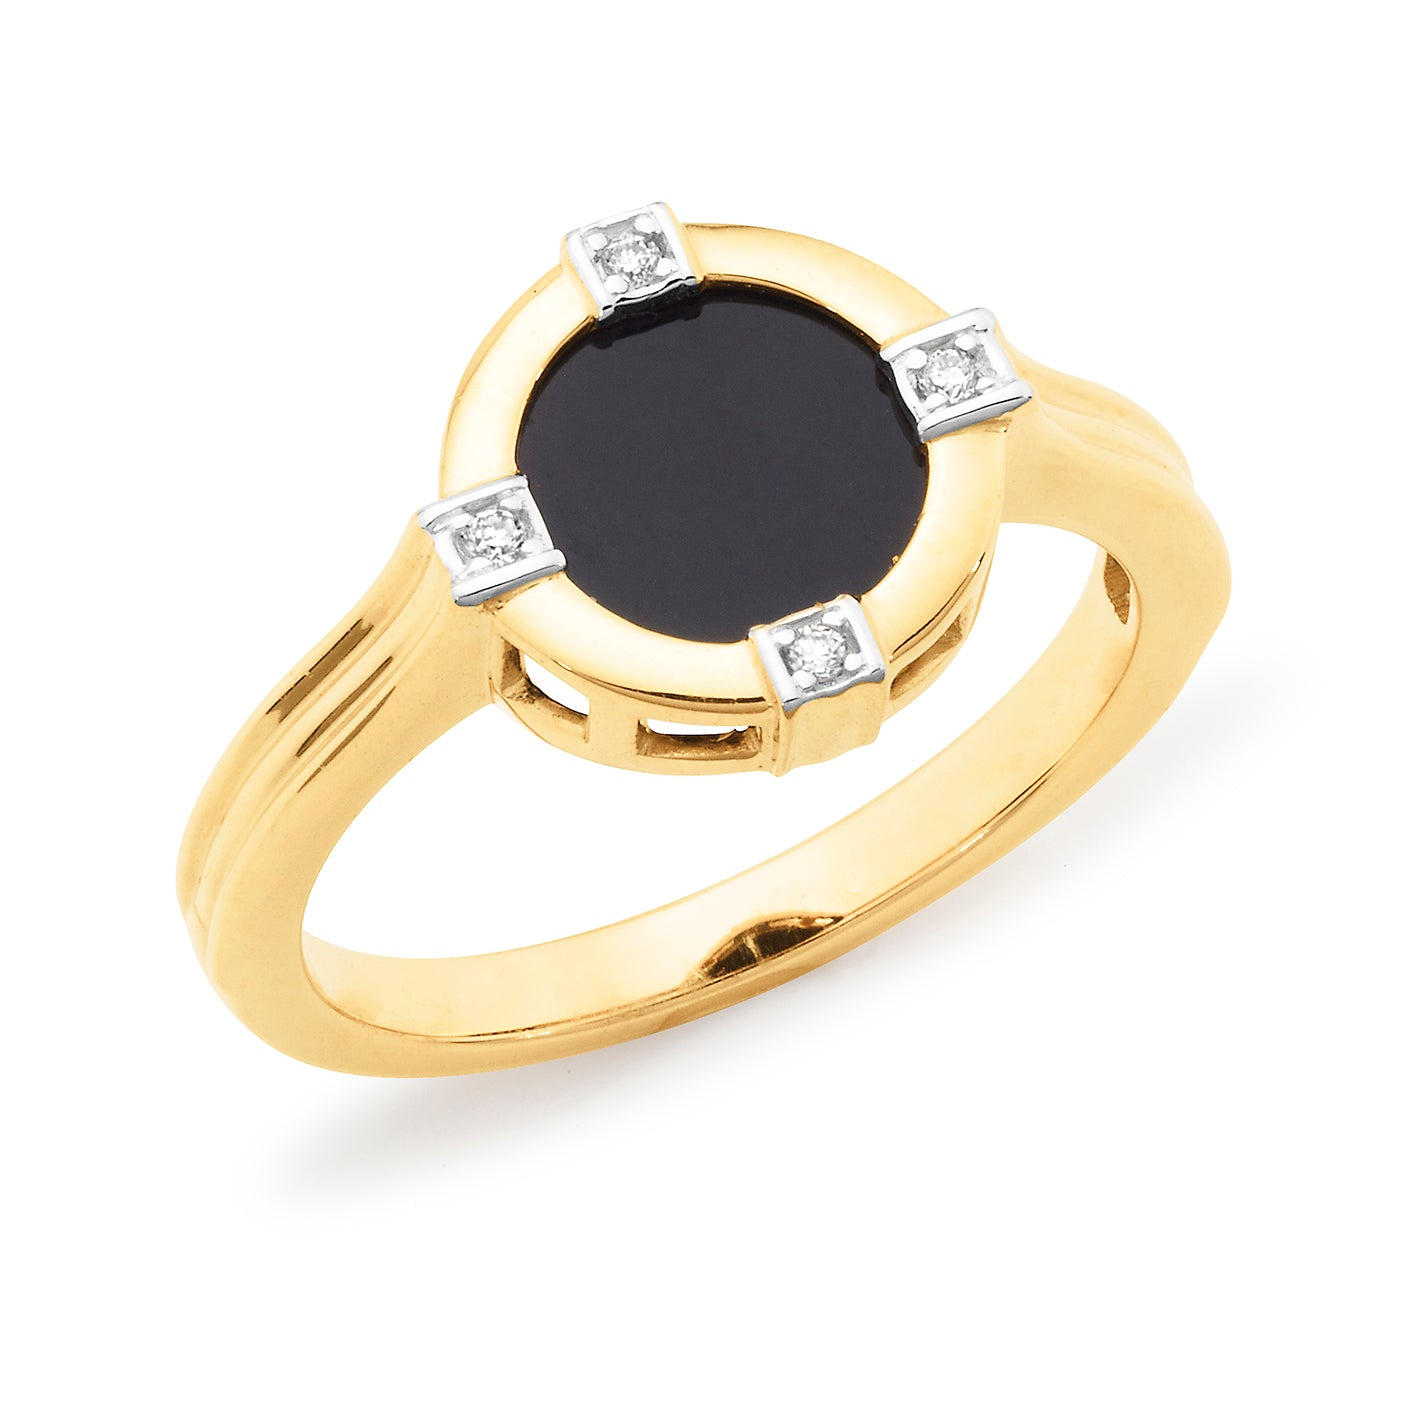 ONYX & DIAMOND (SI3 JK) BEZEL/BEAD SET COLOURED STONE DRESS RING IN 9CT YELLOW GOLD TDW 0.02CT